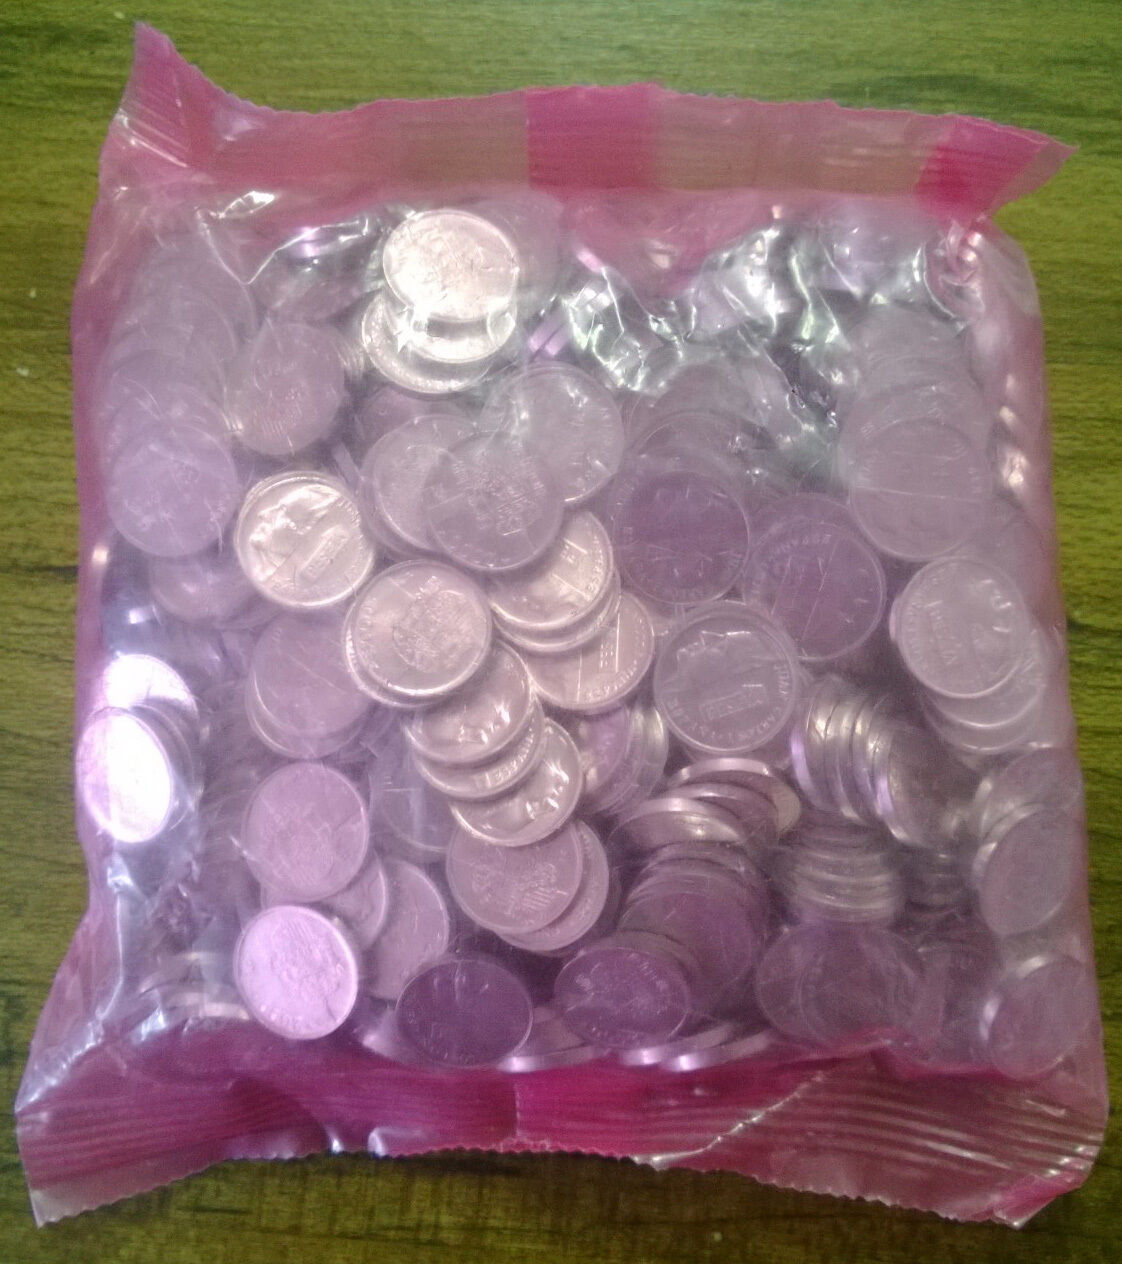 WHOLESALE 500 SPAIN UNC COINS of 2000 KM # 832 MILLENNIUM in BANK WRAPPED BAG